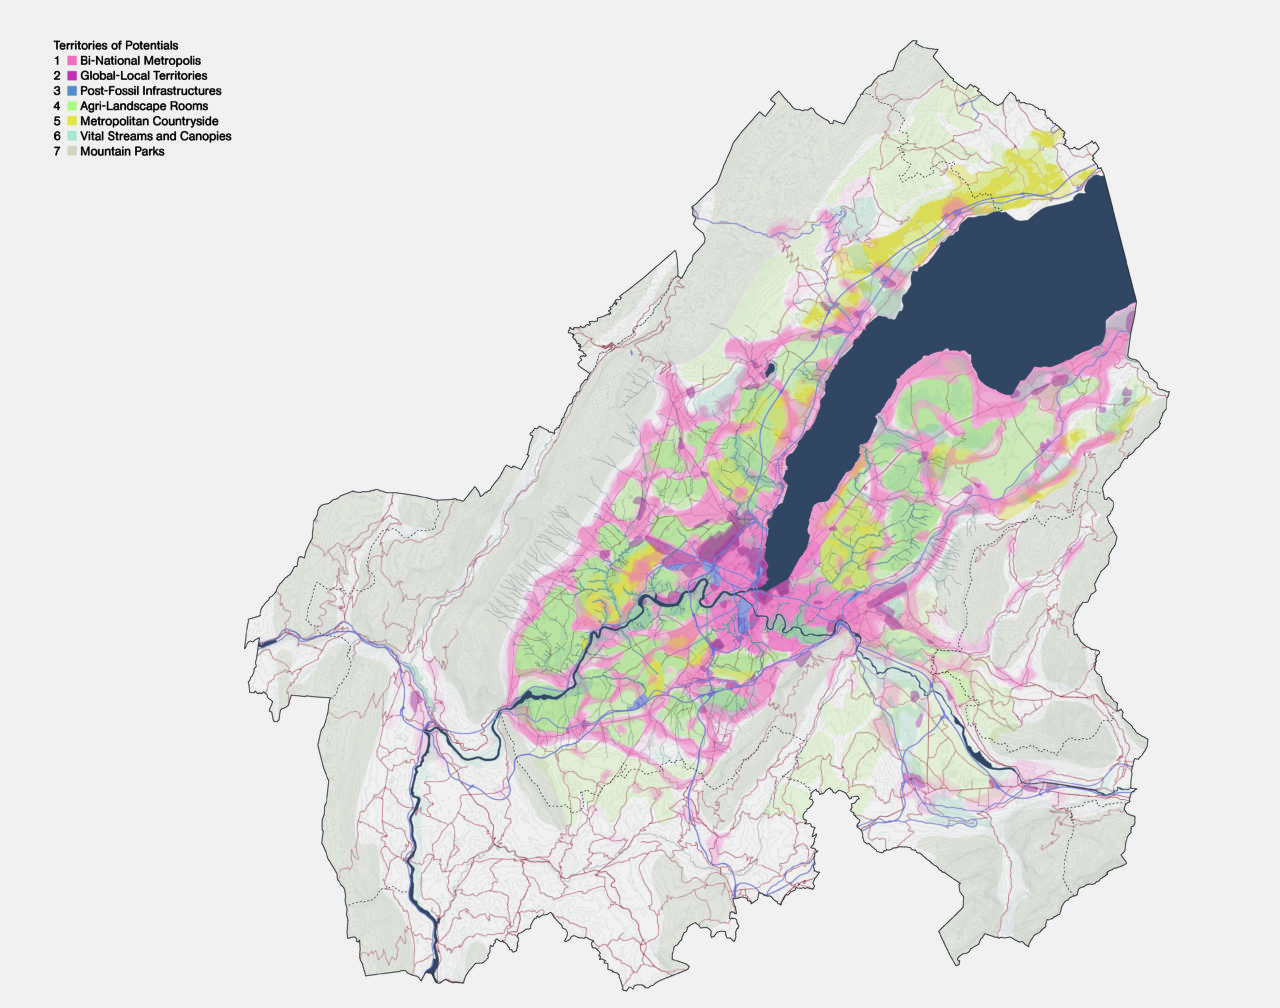 Territories of urban potentials for the Geneva region in 2050. The plan outlines the future land use strategy for a polycentric, equitable and ecological region. The project methodology serves as a precedent for the FCL Global research. Source: Team Grand Genève et son sol, M. Topalović, F. Hertweck, K. Kostka, N. Katsikis, 2020.